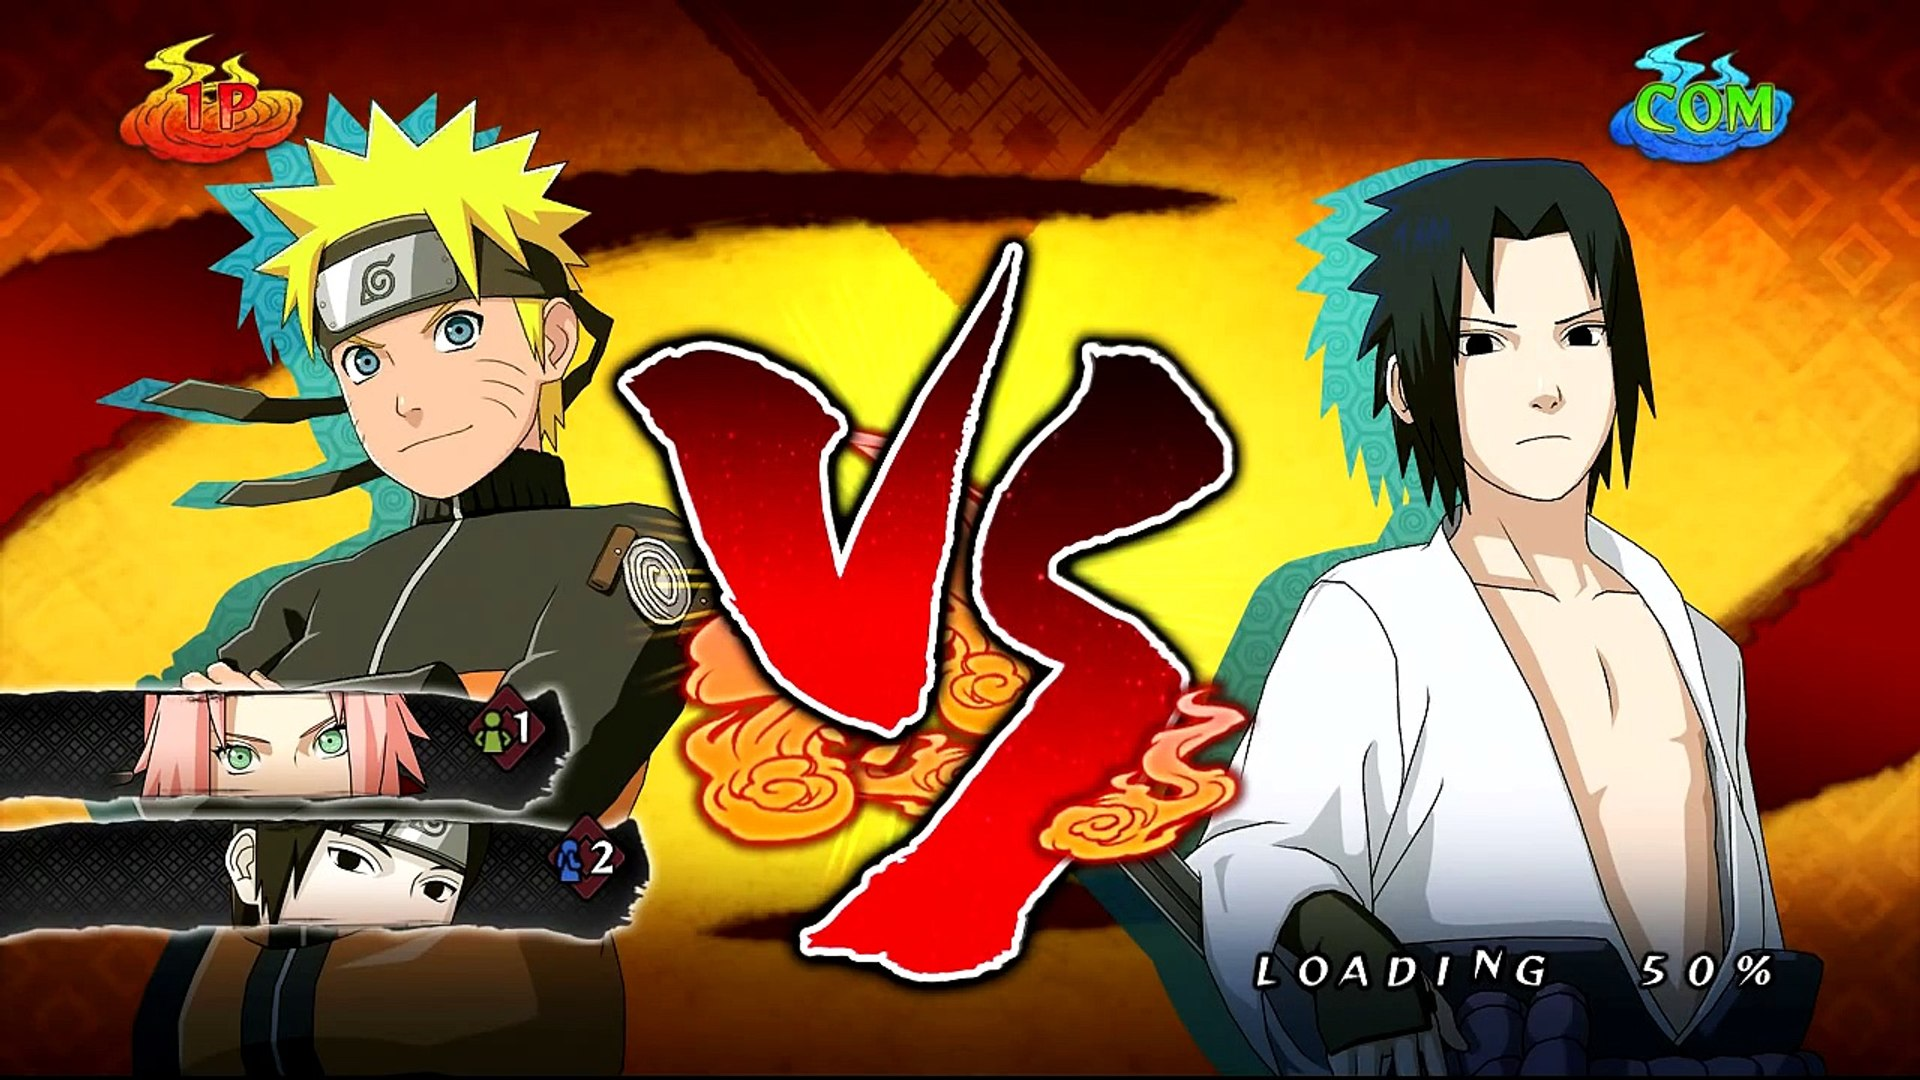 Naruto Shippuden: Ultimate Ninja Storm 2 [HD] - Naruto Vs Sasuke (Boss Battle)